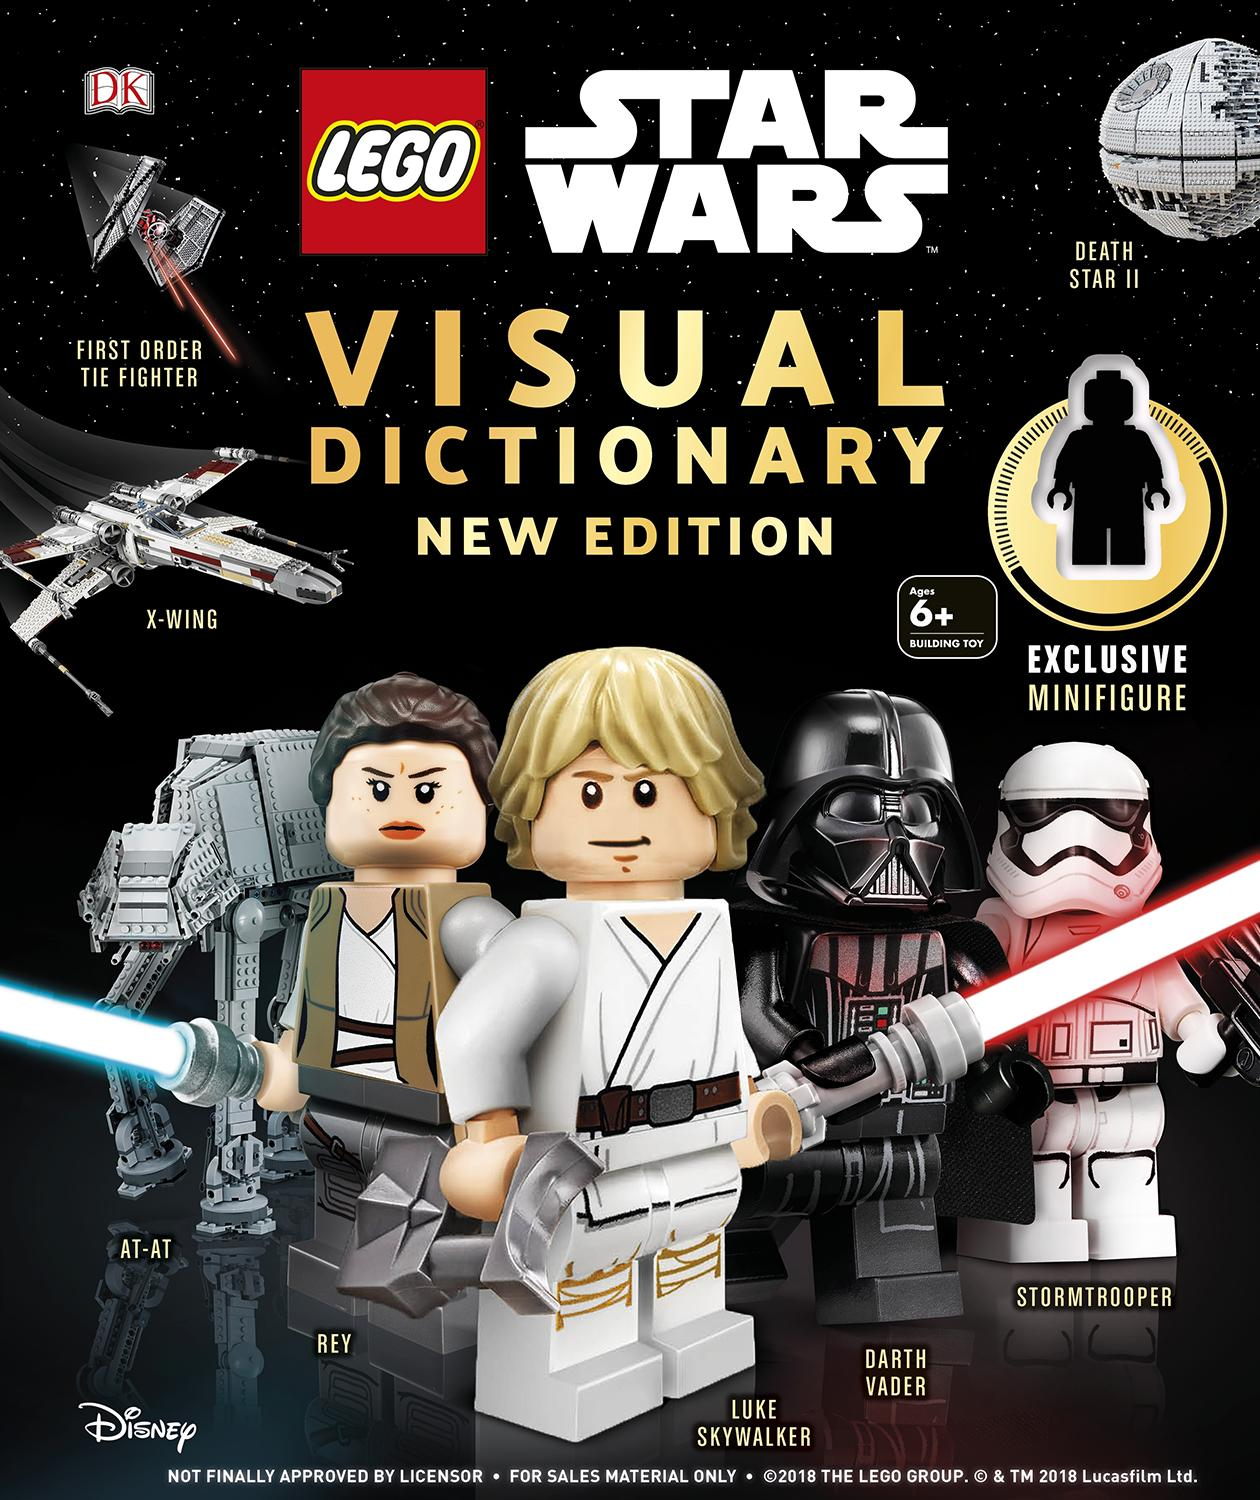 LEGO Star Wars Visual Dictionary New Edition: With exclusive minifigure by DK